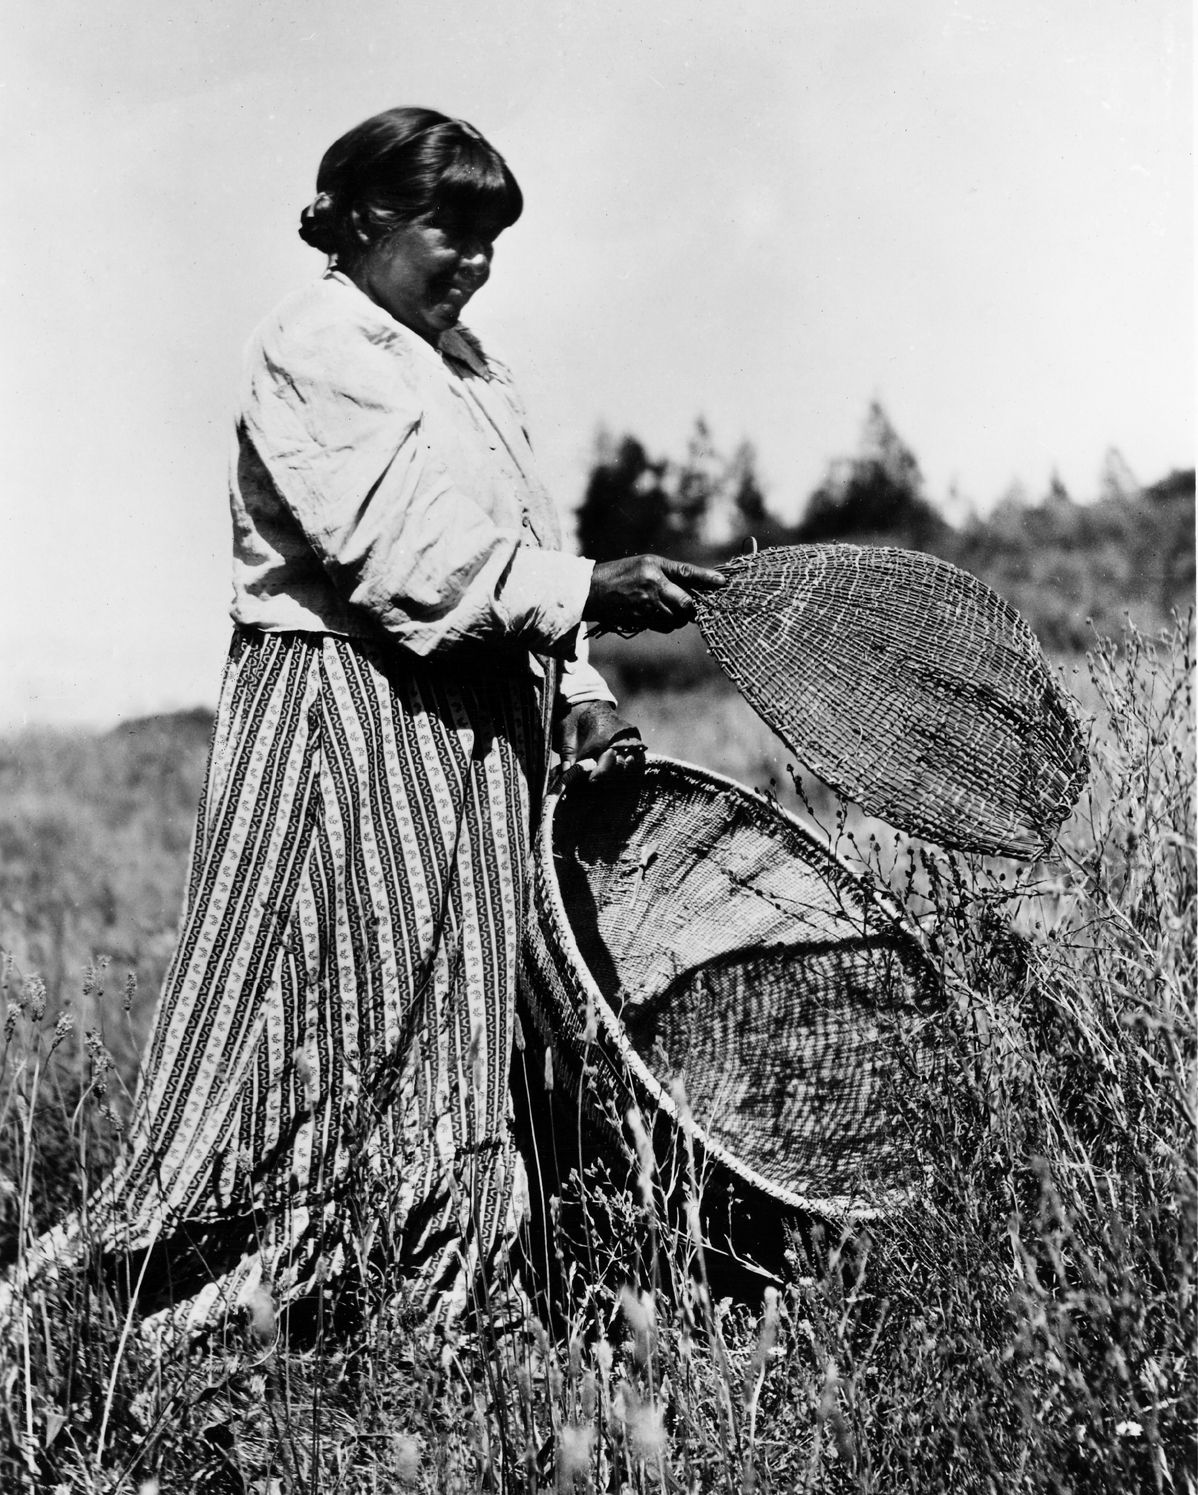 This Maidu woman is gathering wildflower seeds in the photo, however grass seeds would have been gathered the same way.